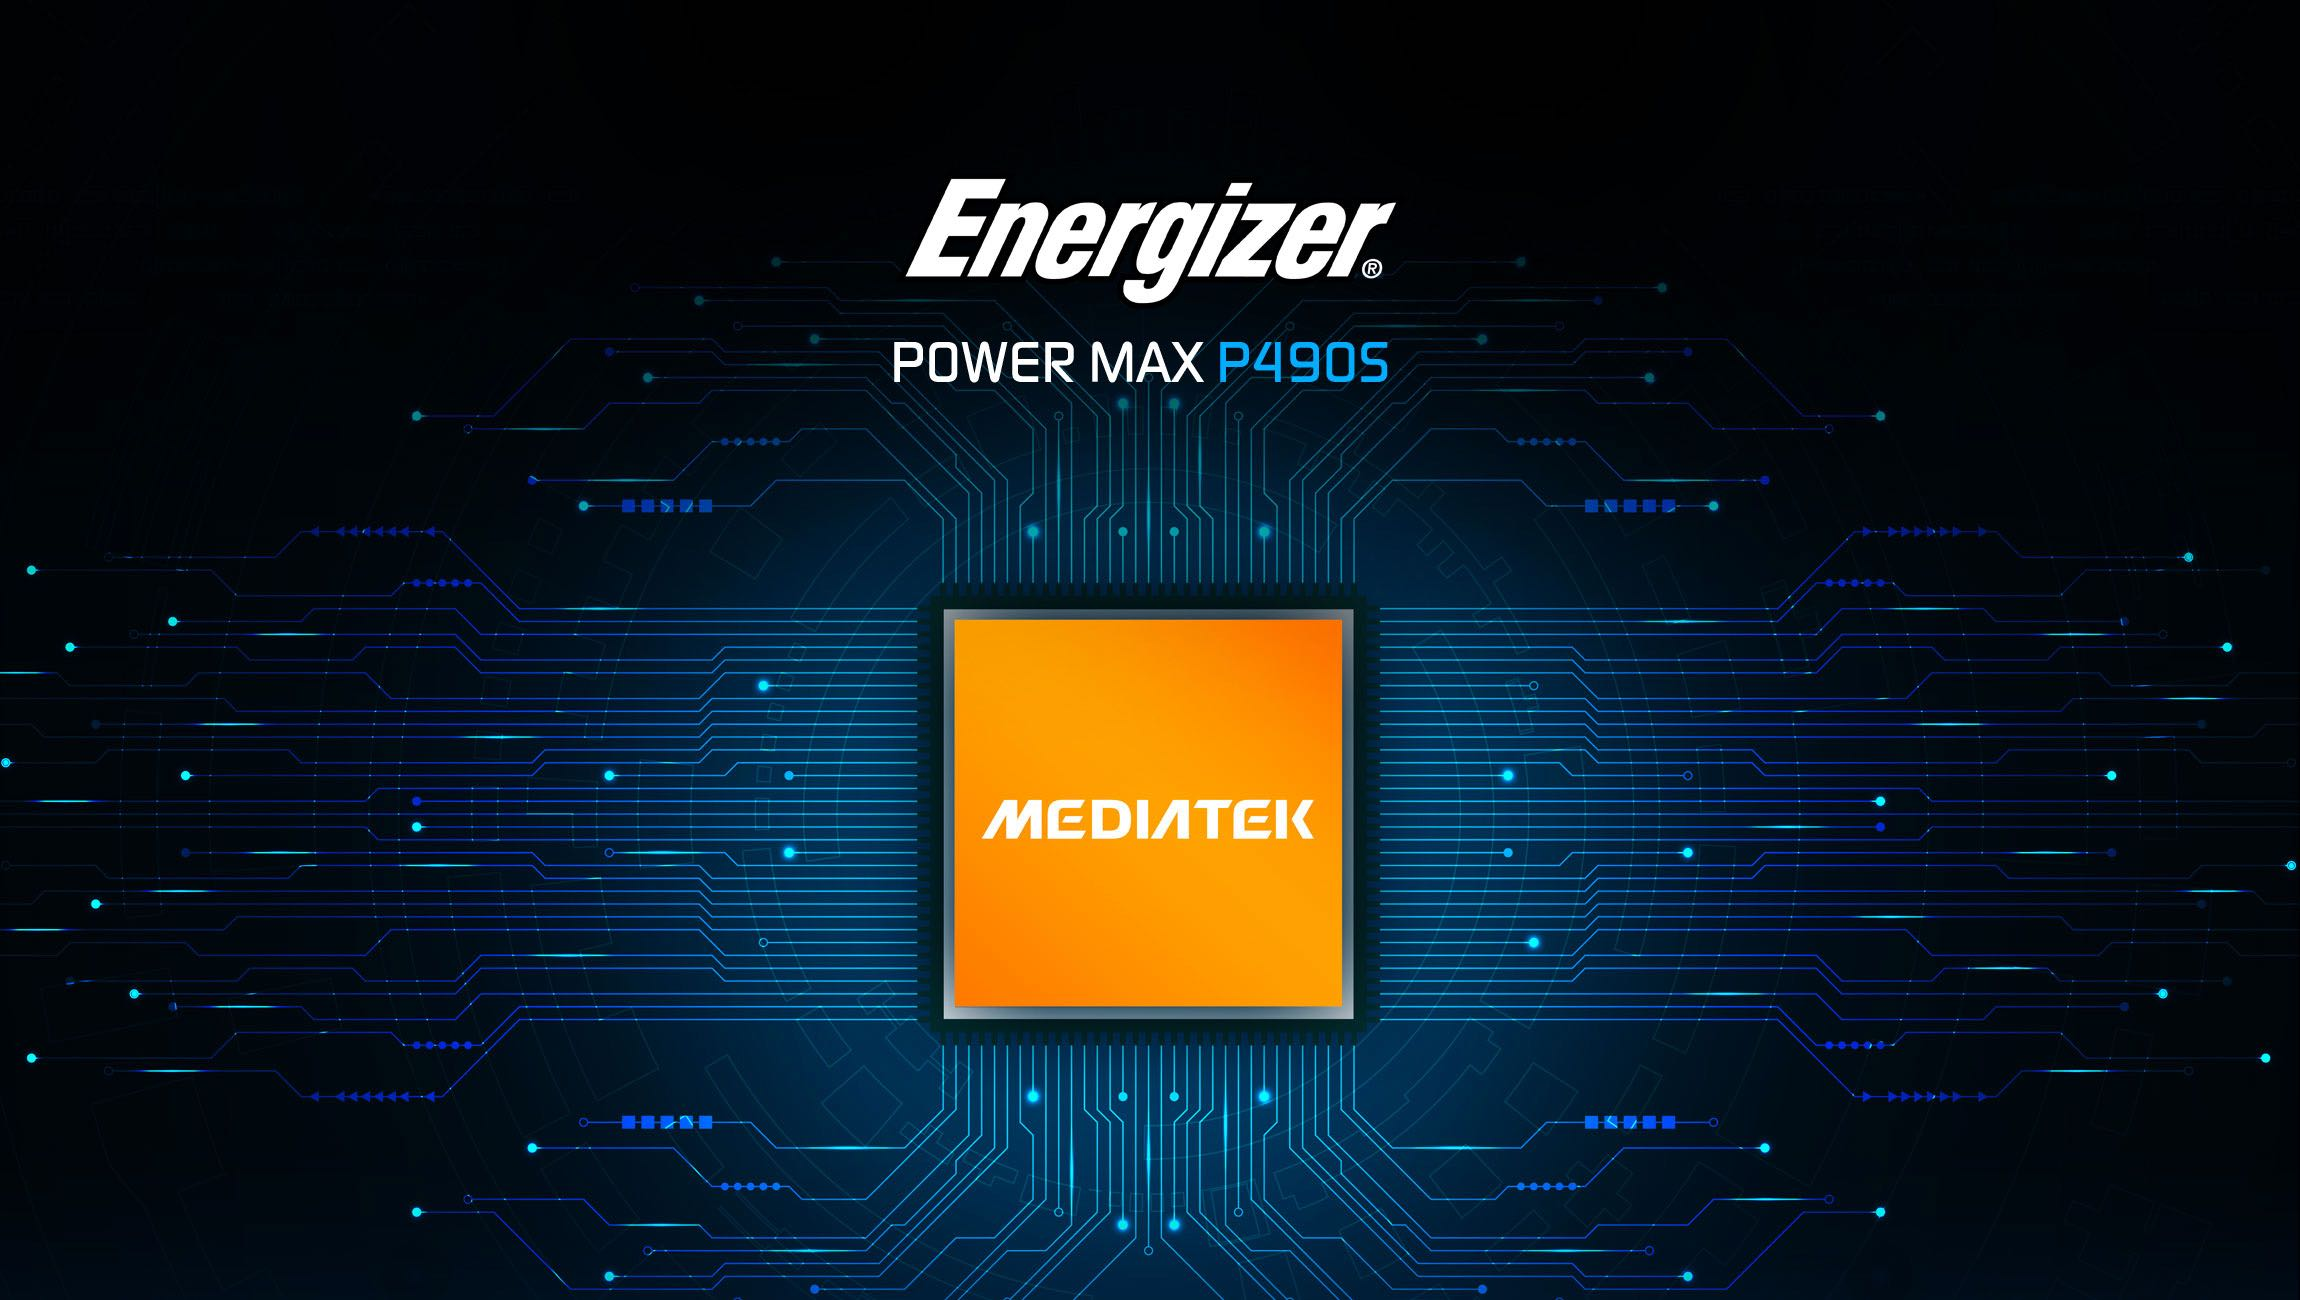 POWER MAX P490S features superior performance